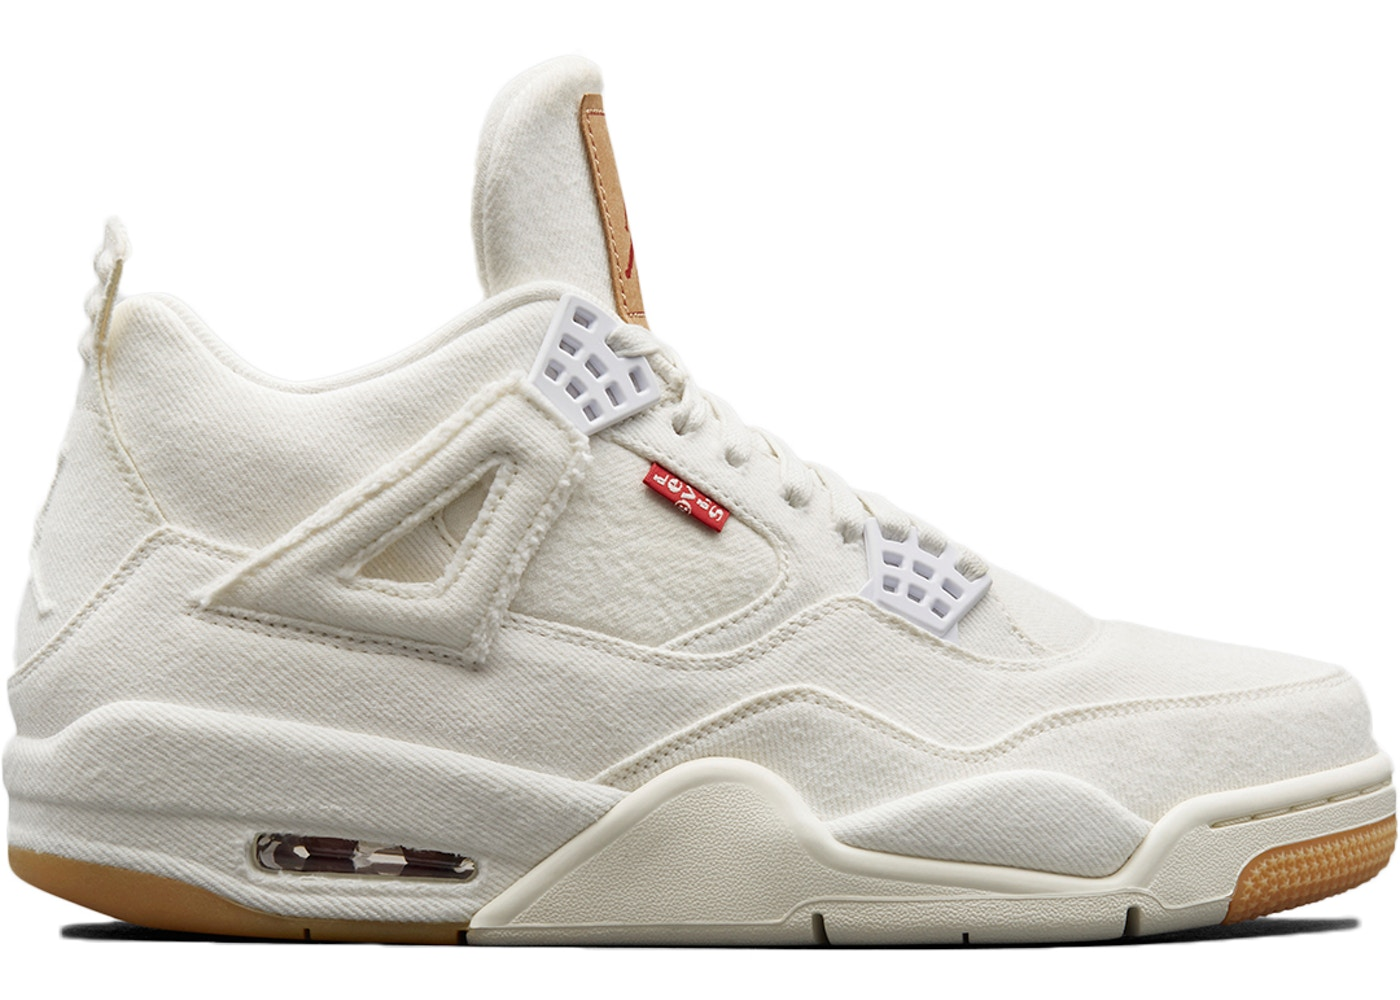 check out e1ef8 eddea Jordan 4 Retro Levi's White (Levi's Tag)